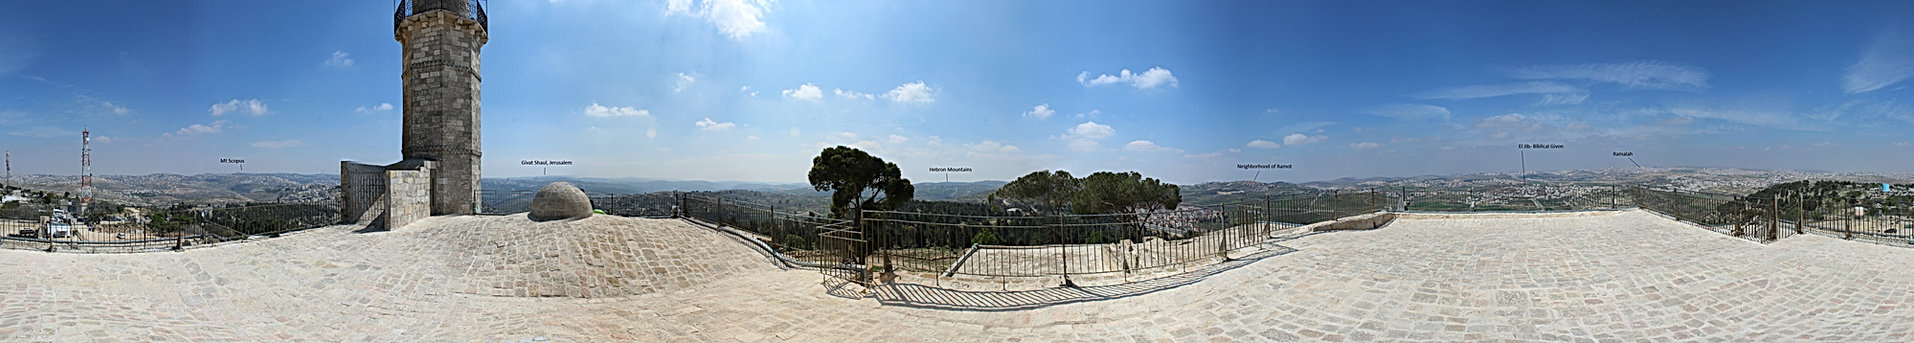 kever shmuel full panorama  with labels(